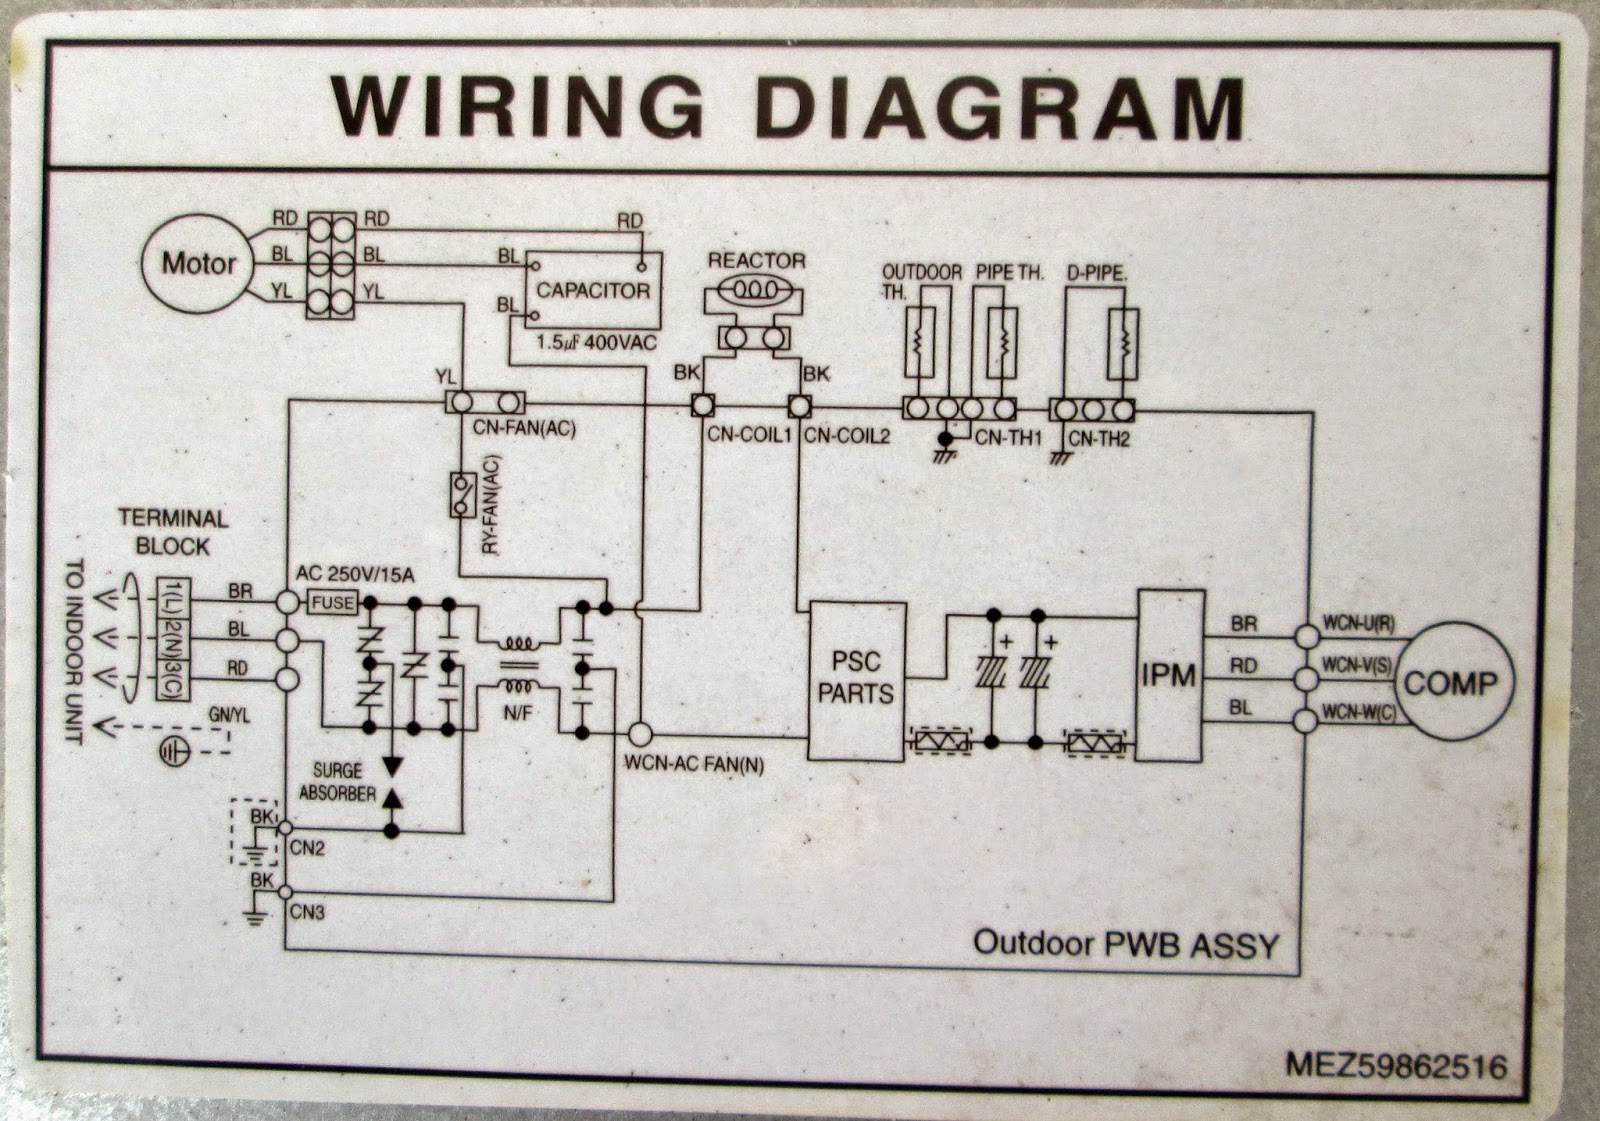 hight resolution of wiring diagram of split ac download wiring diagram wiring diagram of split ac download